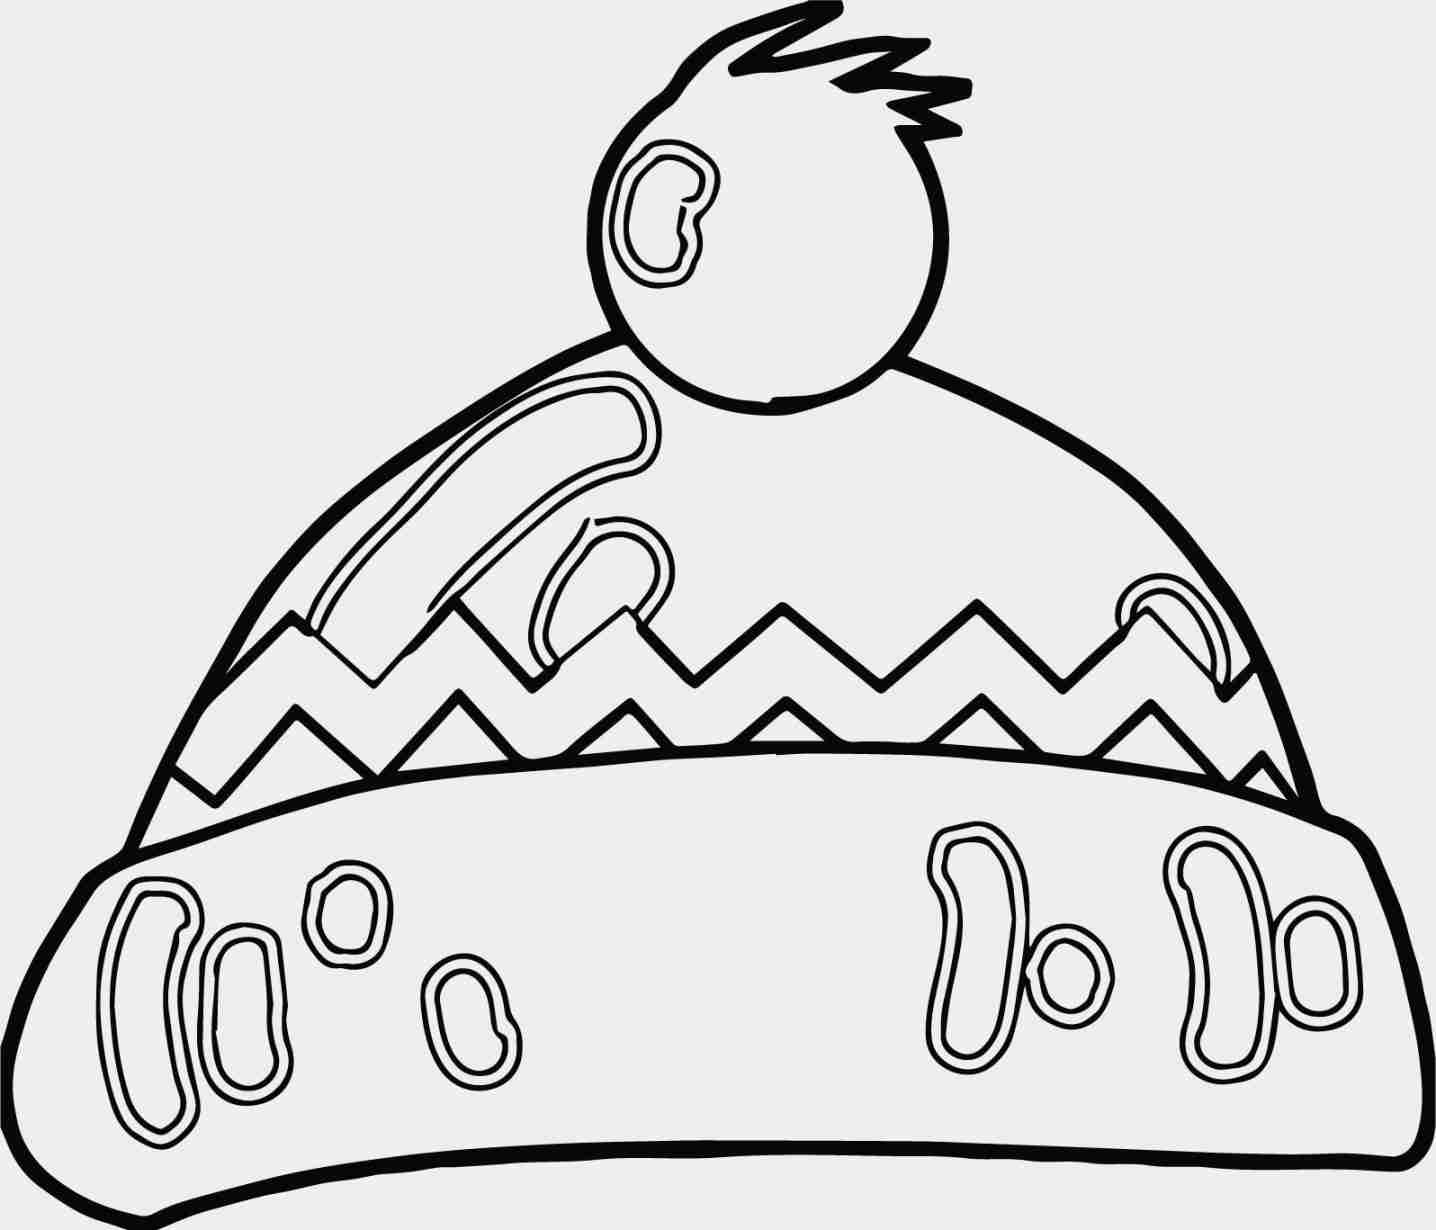 winter hat coloring page winter hat coloring pages at getcoloringscom free winter coloring hat page